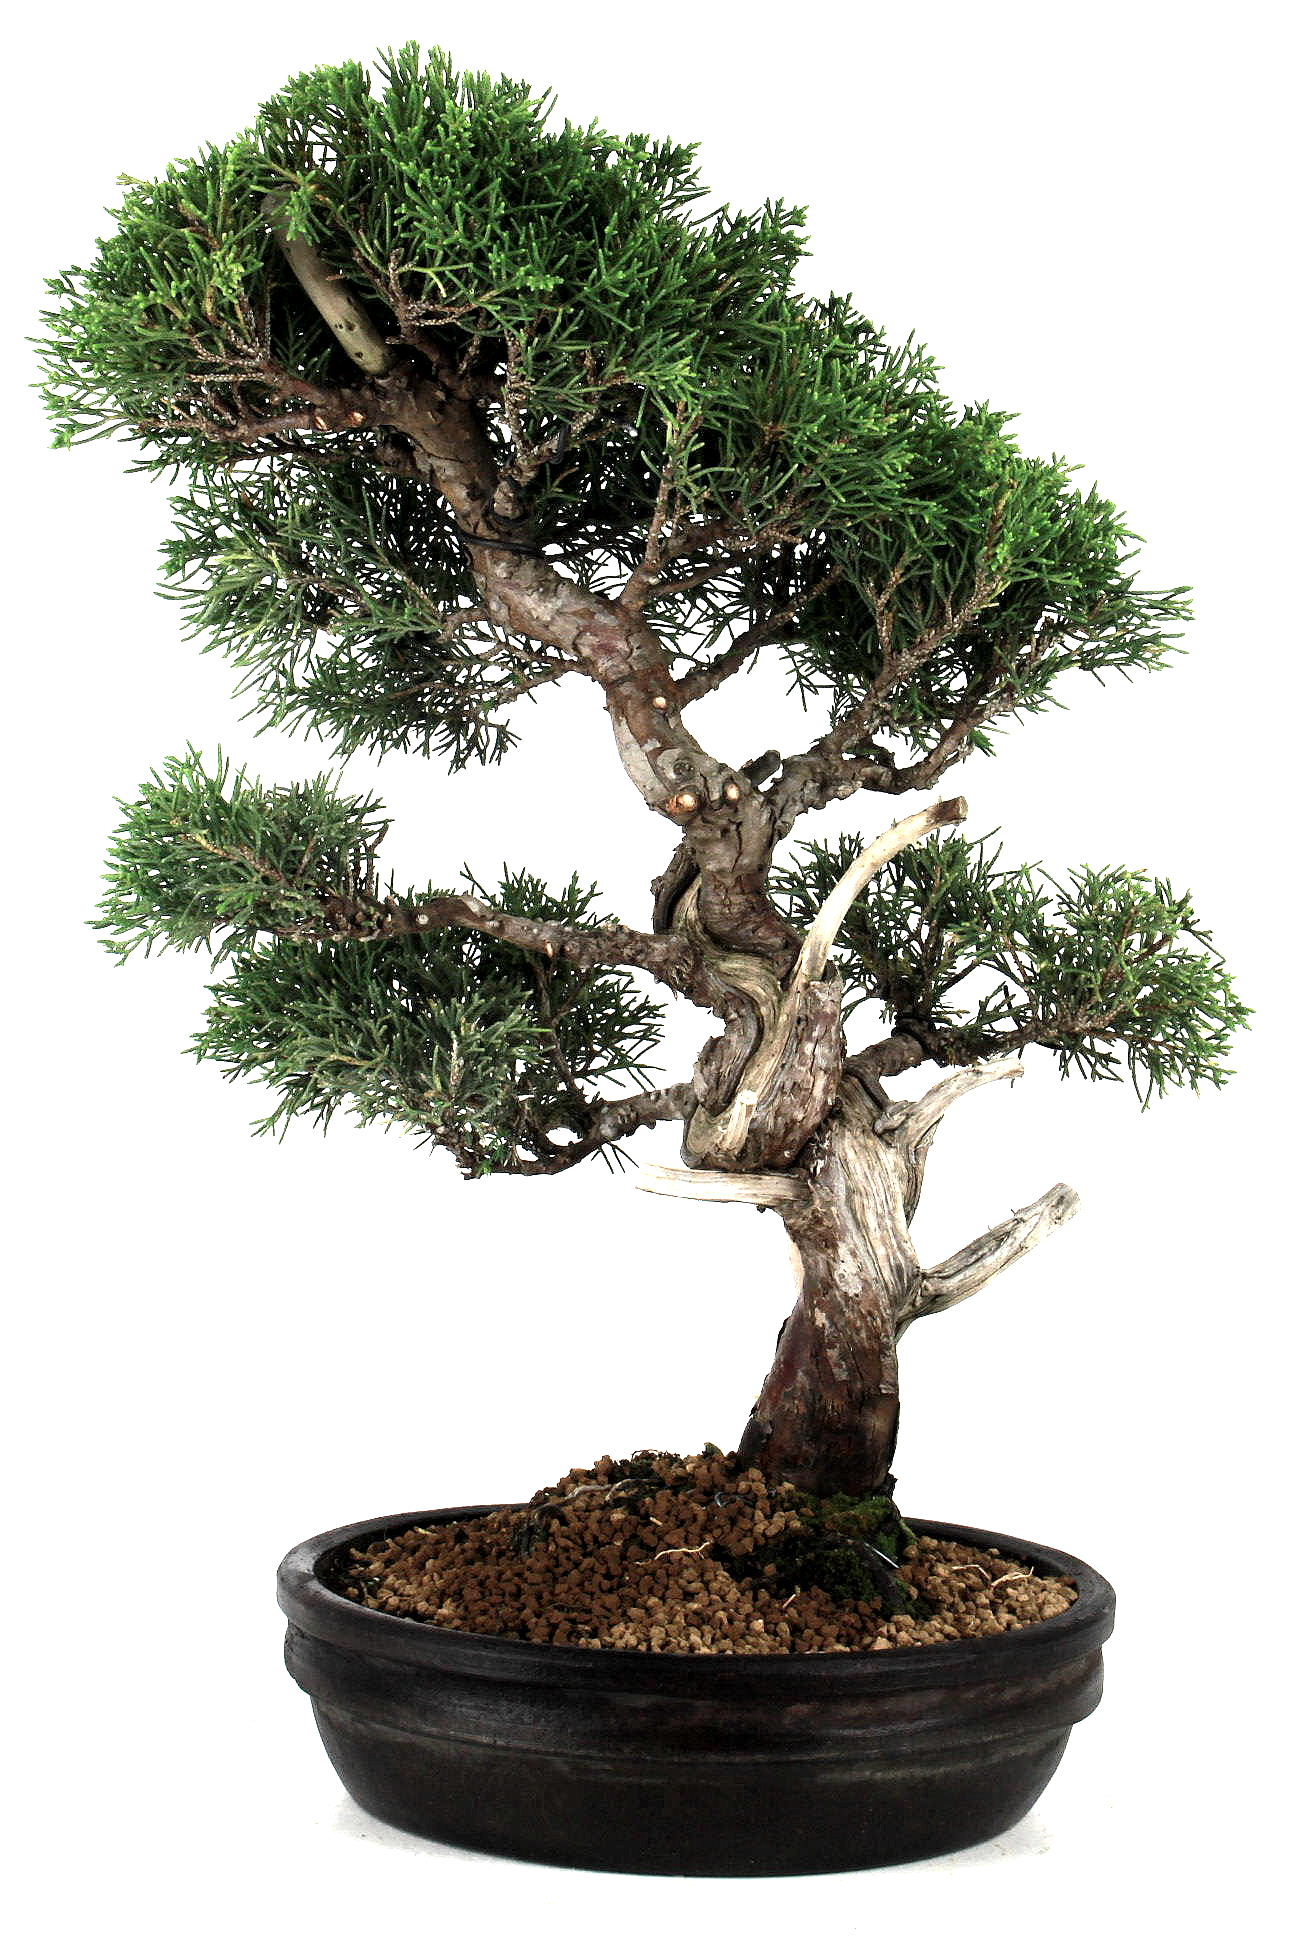 bonsai wacholder juniperus chinensis 42 cm r215 bei oyaki. Black Bedroom Furniture Sets. Home Design Ideas